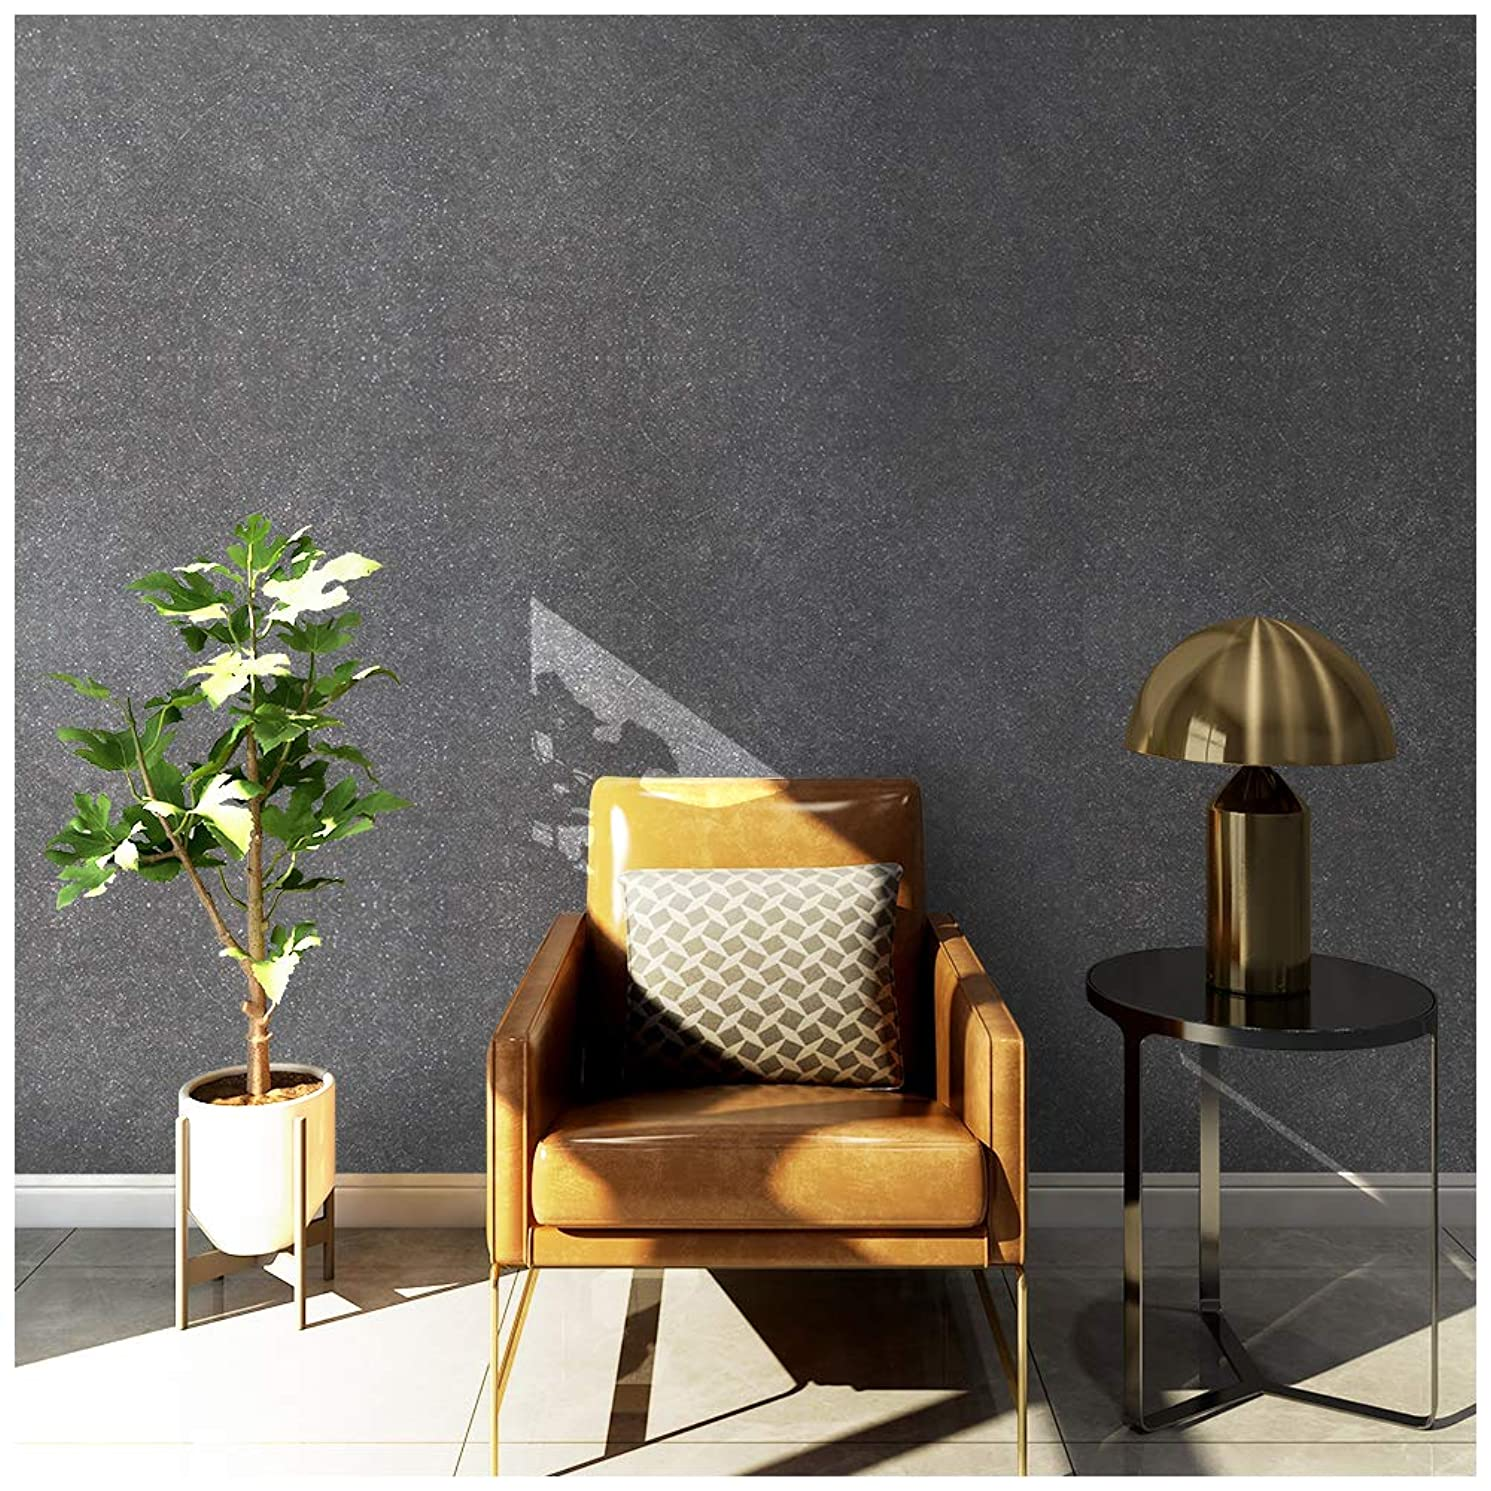 HaokHome 3024 Non Woven Silk Black Wallpaper Fiber Textured Wall Paper for Home Kitchen Bathroom Wall Decoration 20.8